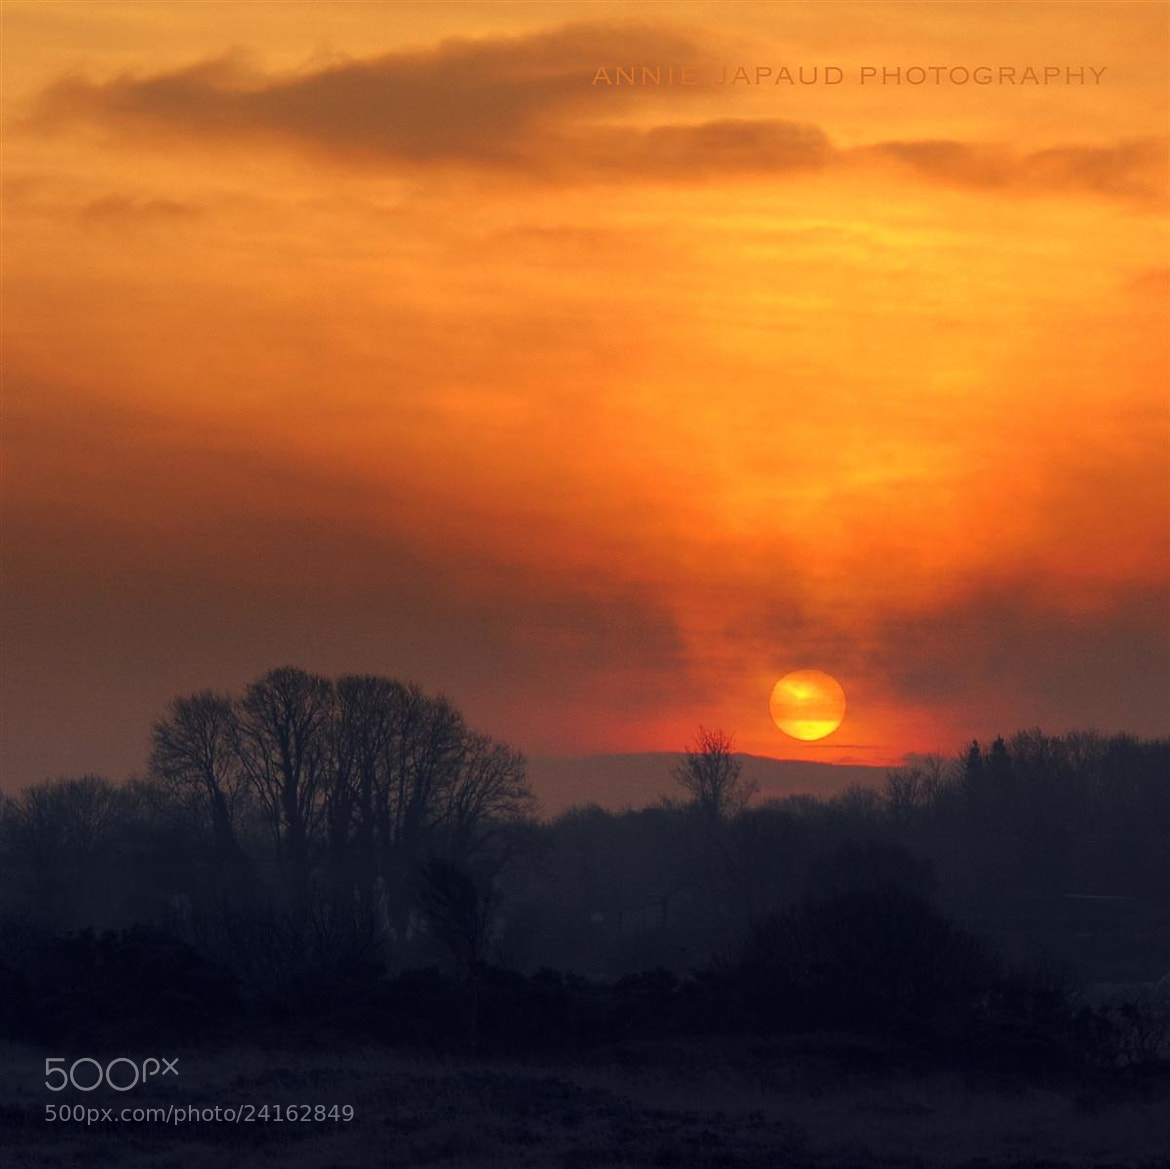 Photograph Sunrise by Annie Japaud on 500px